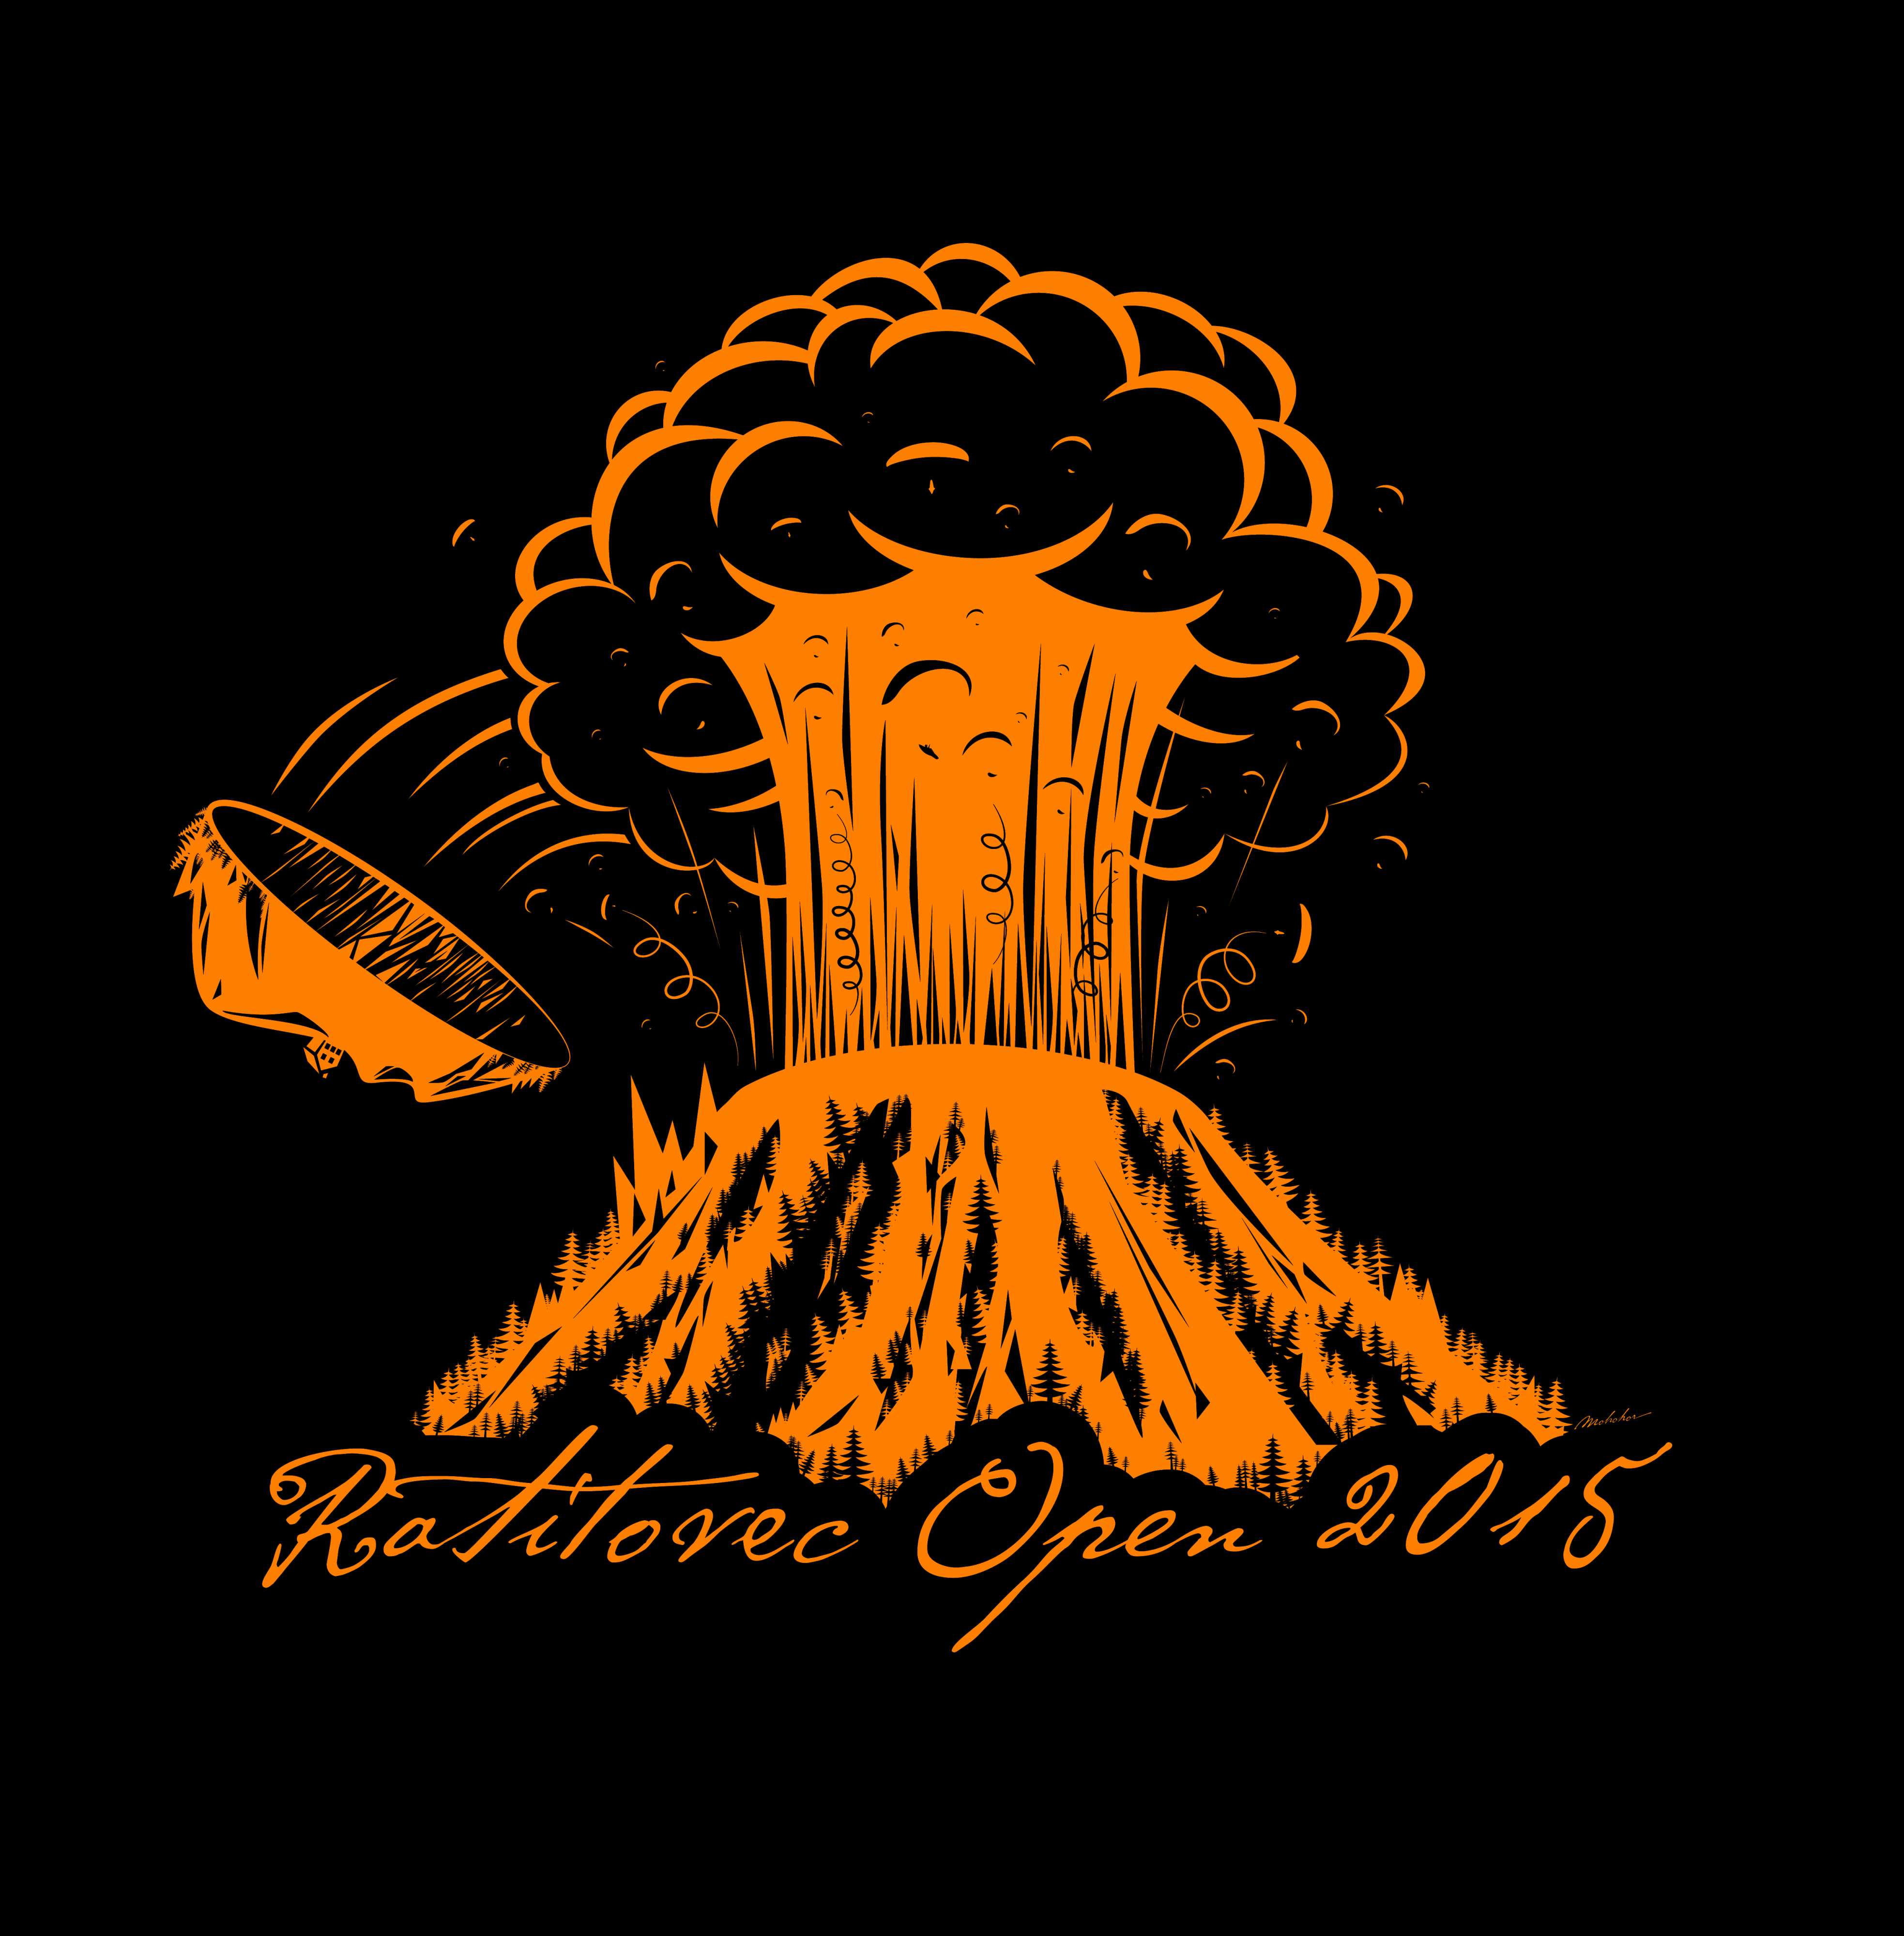 Ratitovec Open 2015 logo